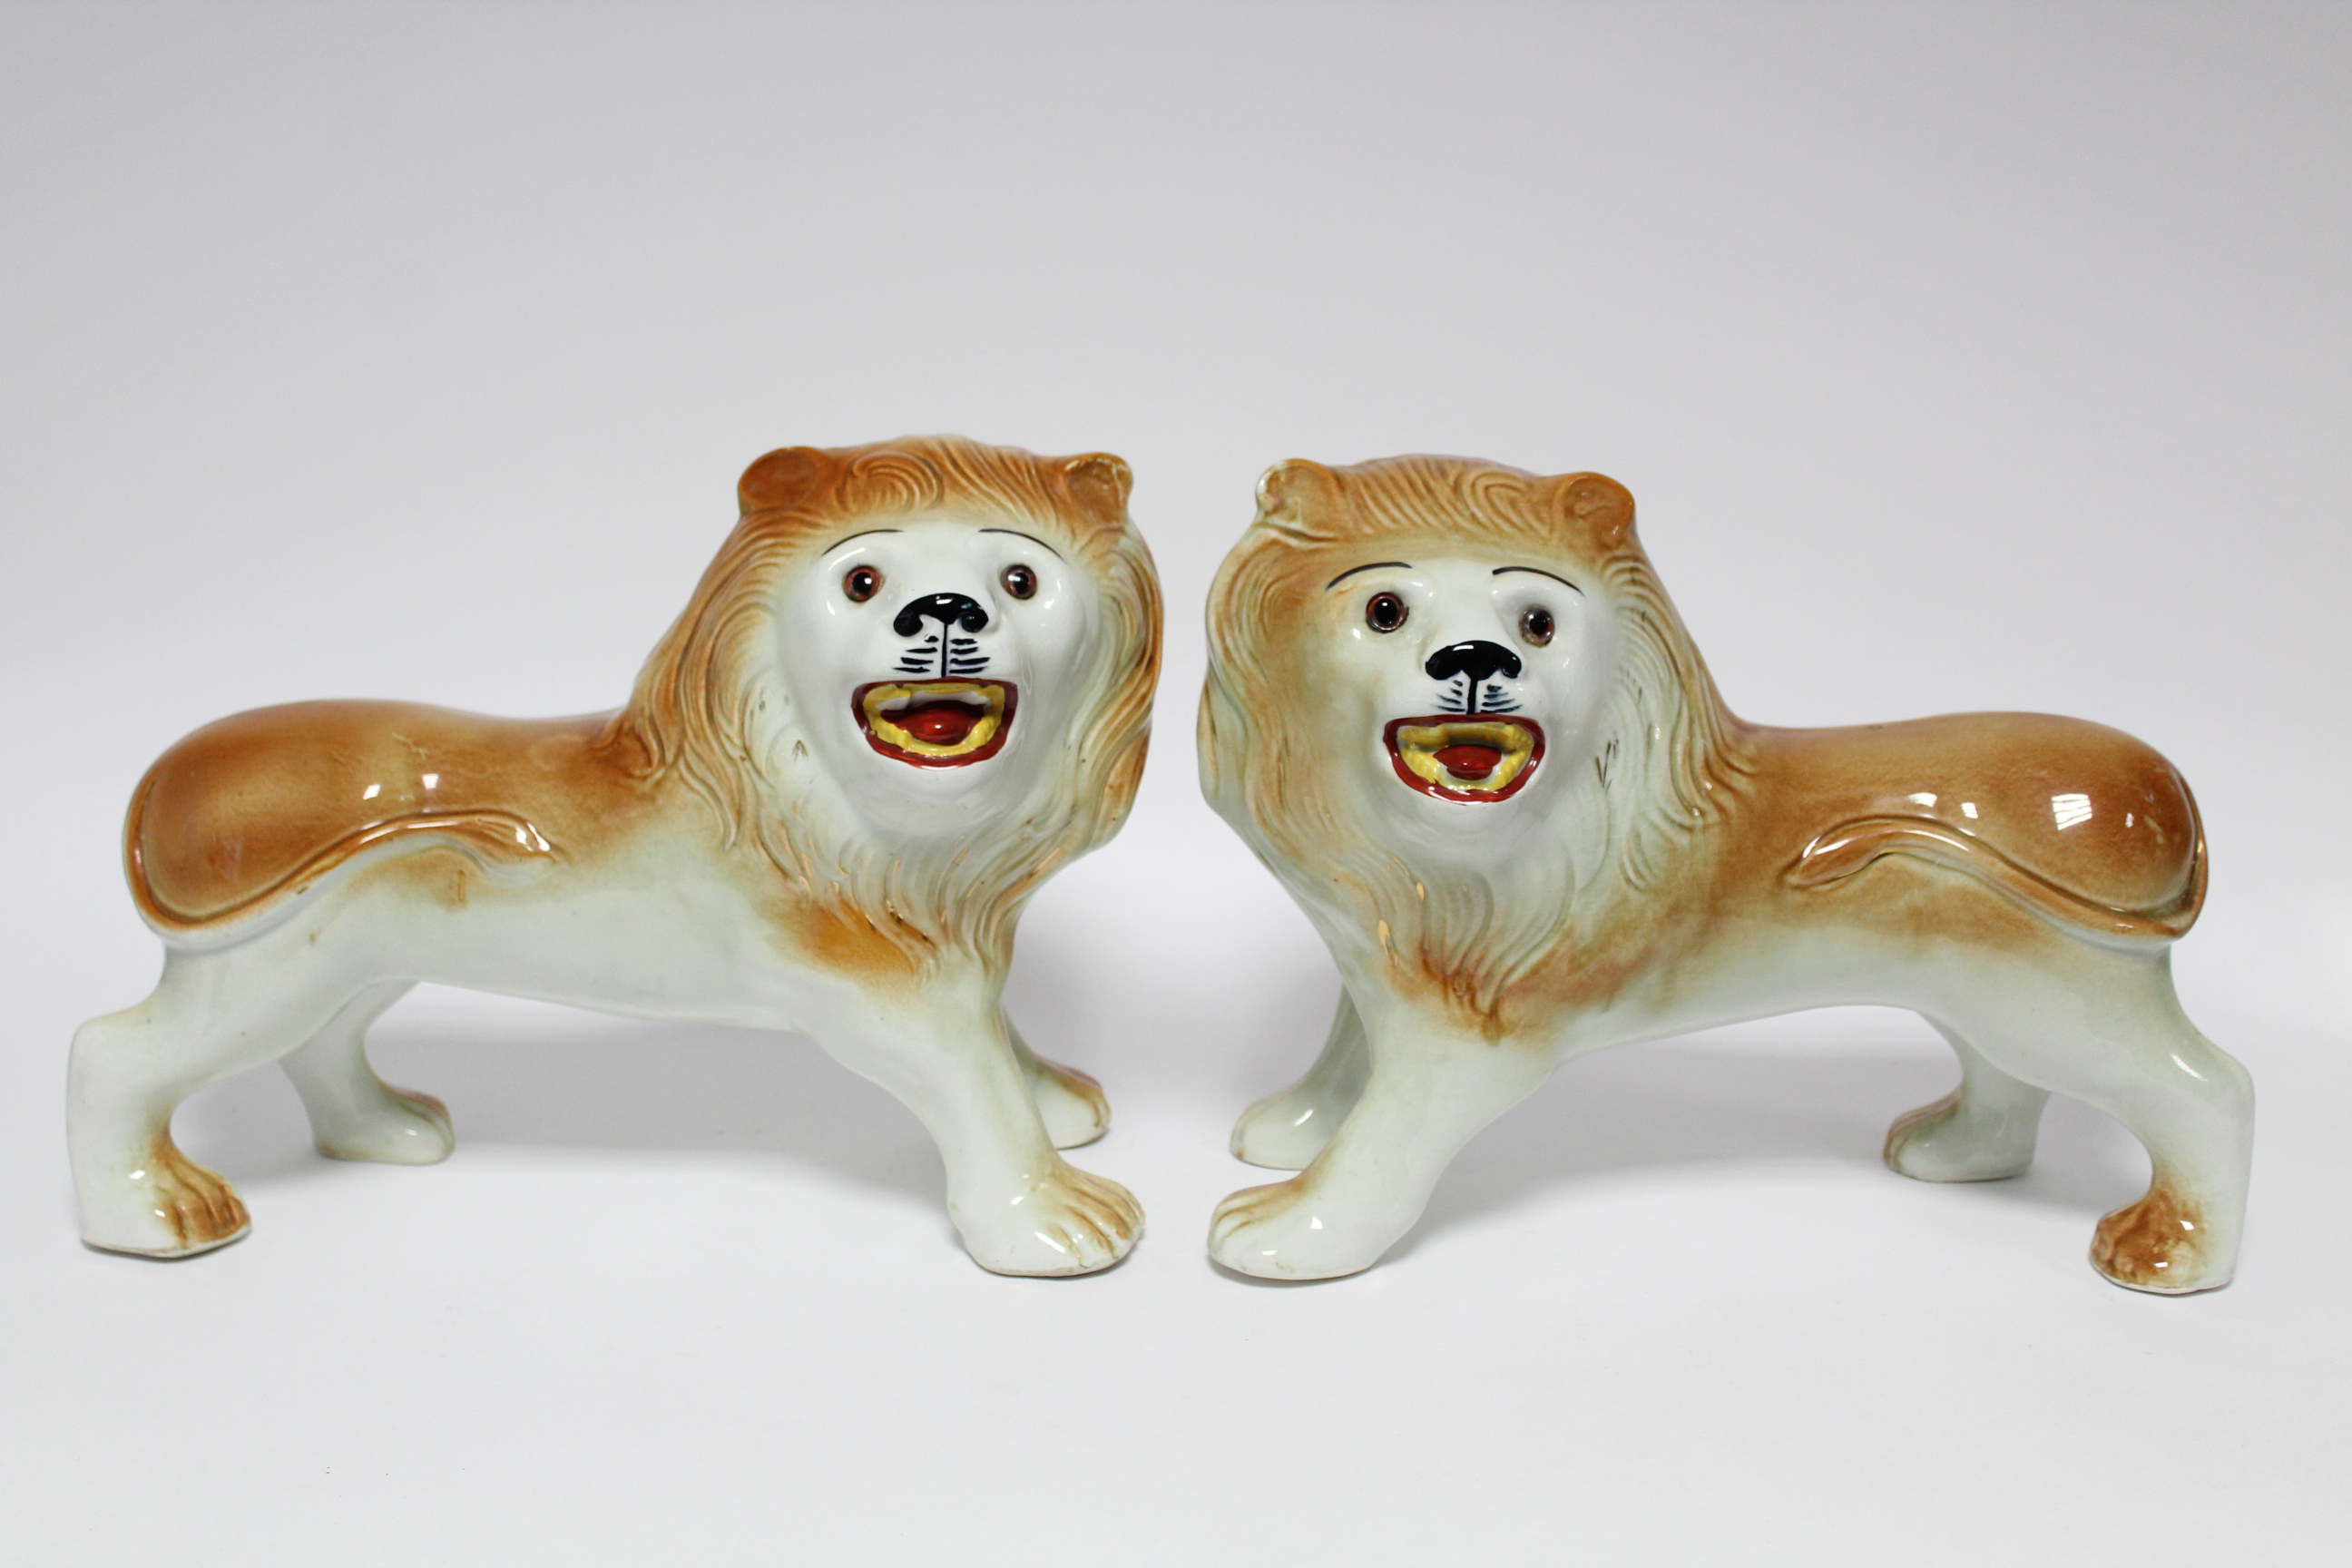 A pair of early 20th century Sadler Pottery large standing models of roaring lions with inset - Image 2 of 7